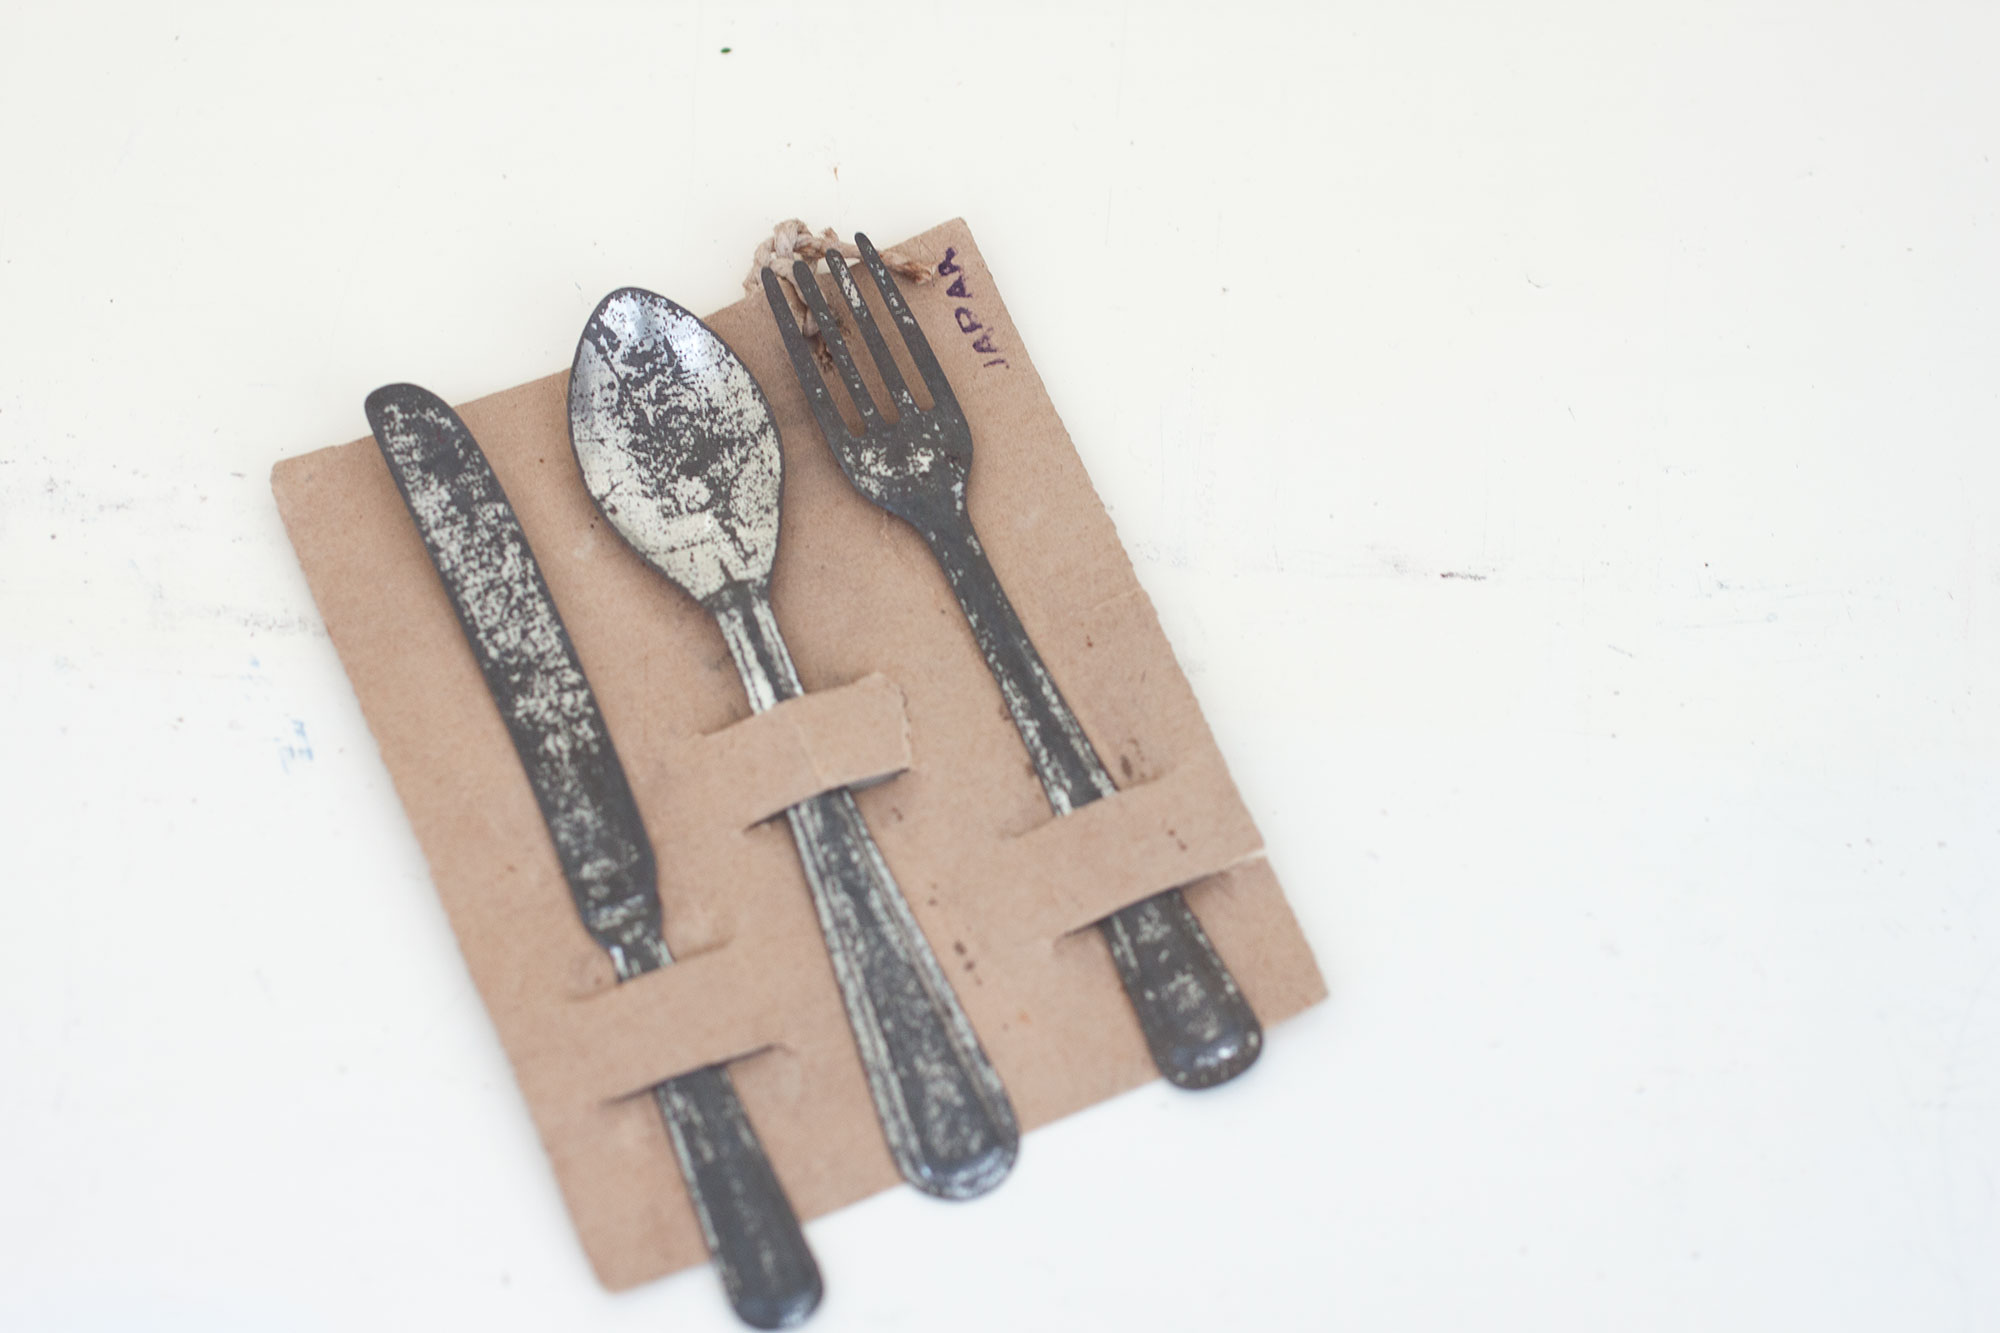 Vintage Japanese toy cutlery set